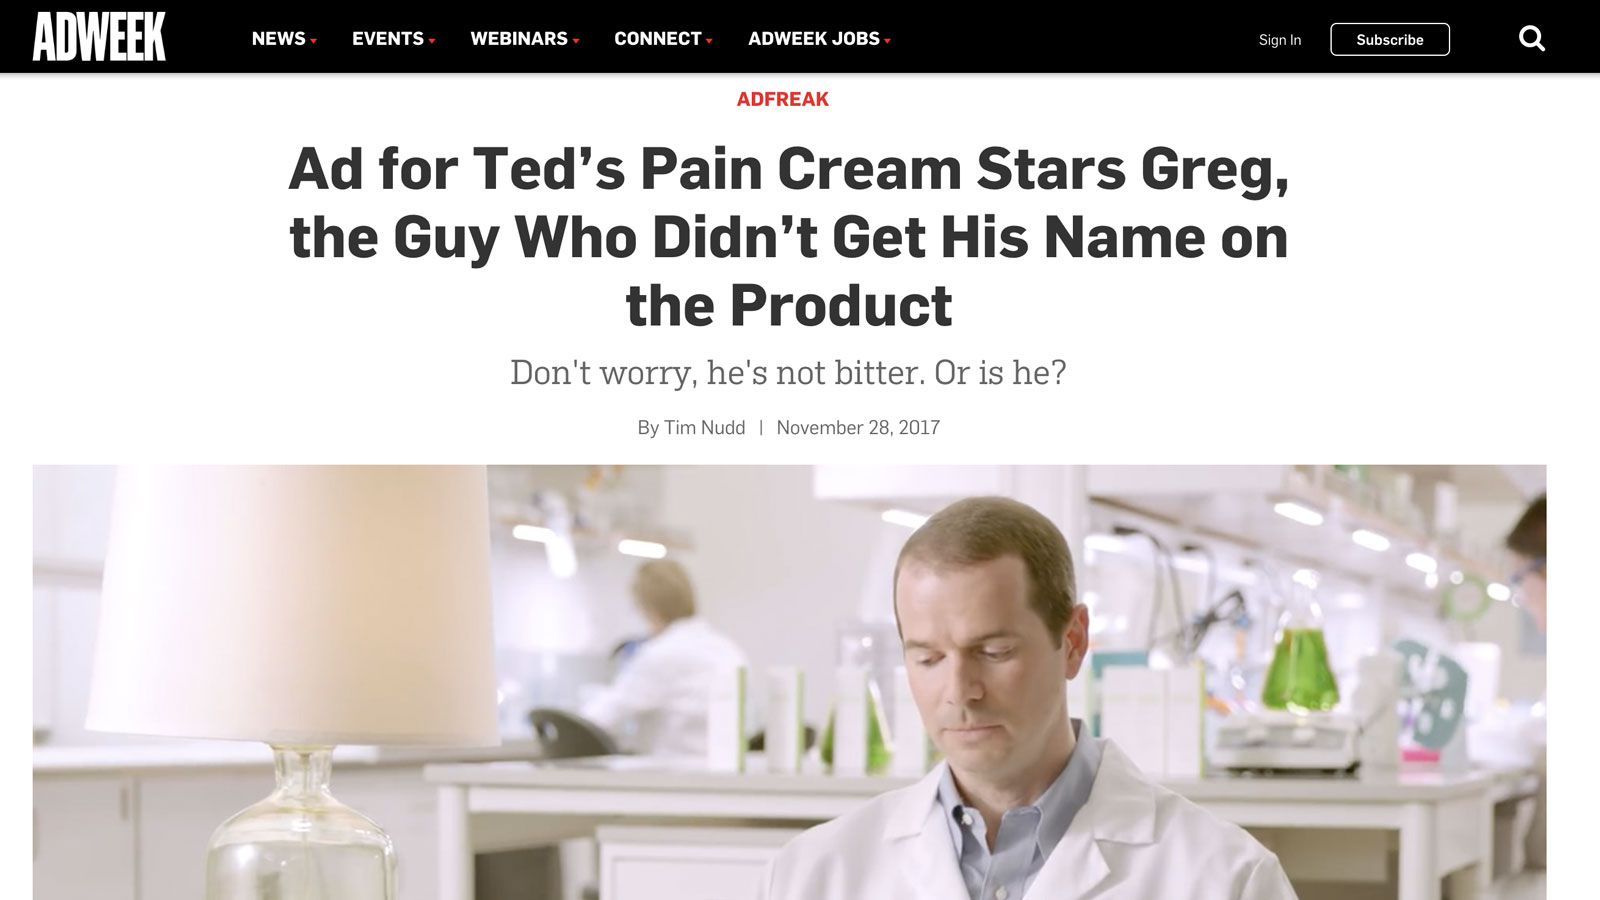 AdWeek – Ted's Pain Cream – My name is Greg